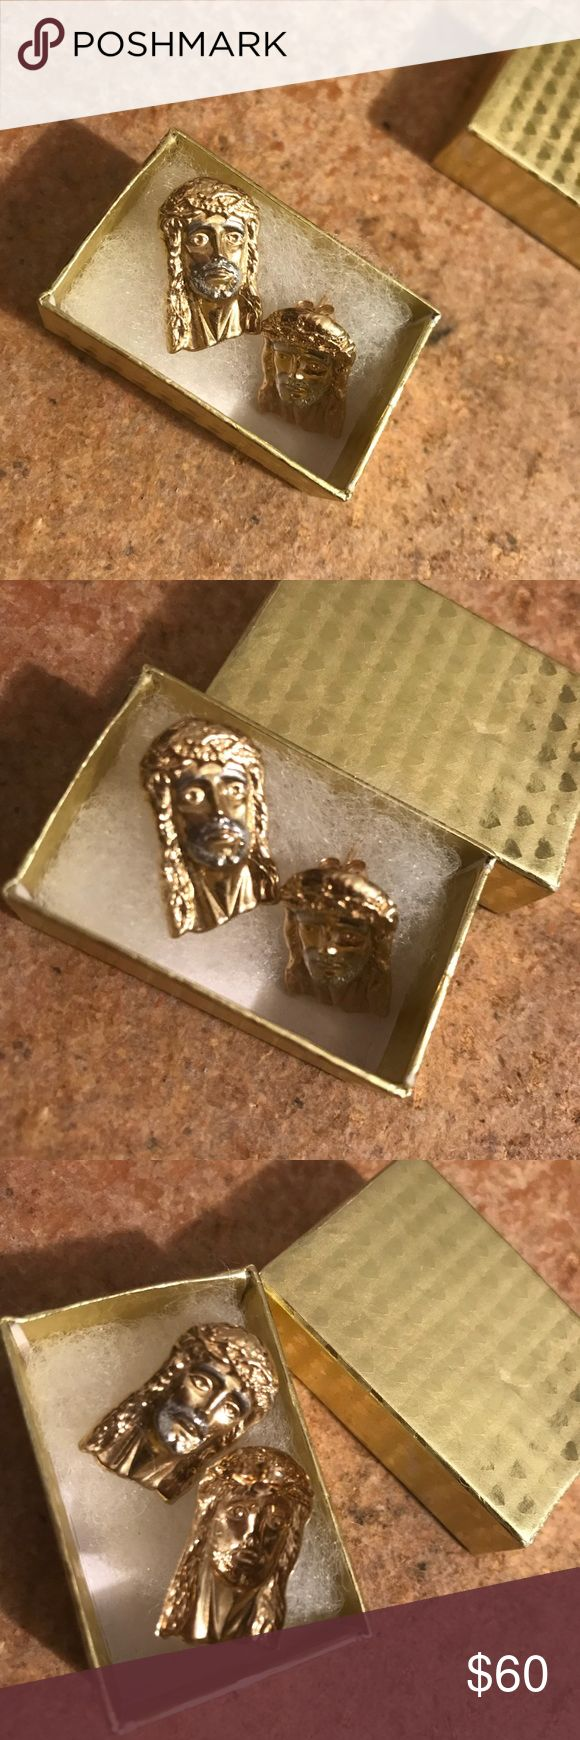 14k Gold Jesus head studs for men . Gold Jesus piece studs for men. Gently used for a couple days. Will be cleaned . Comes with original box. Can be worn on a women. Sold as is. Plz feel free to leave me a comment. Accessories